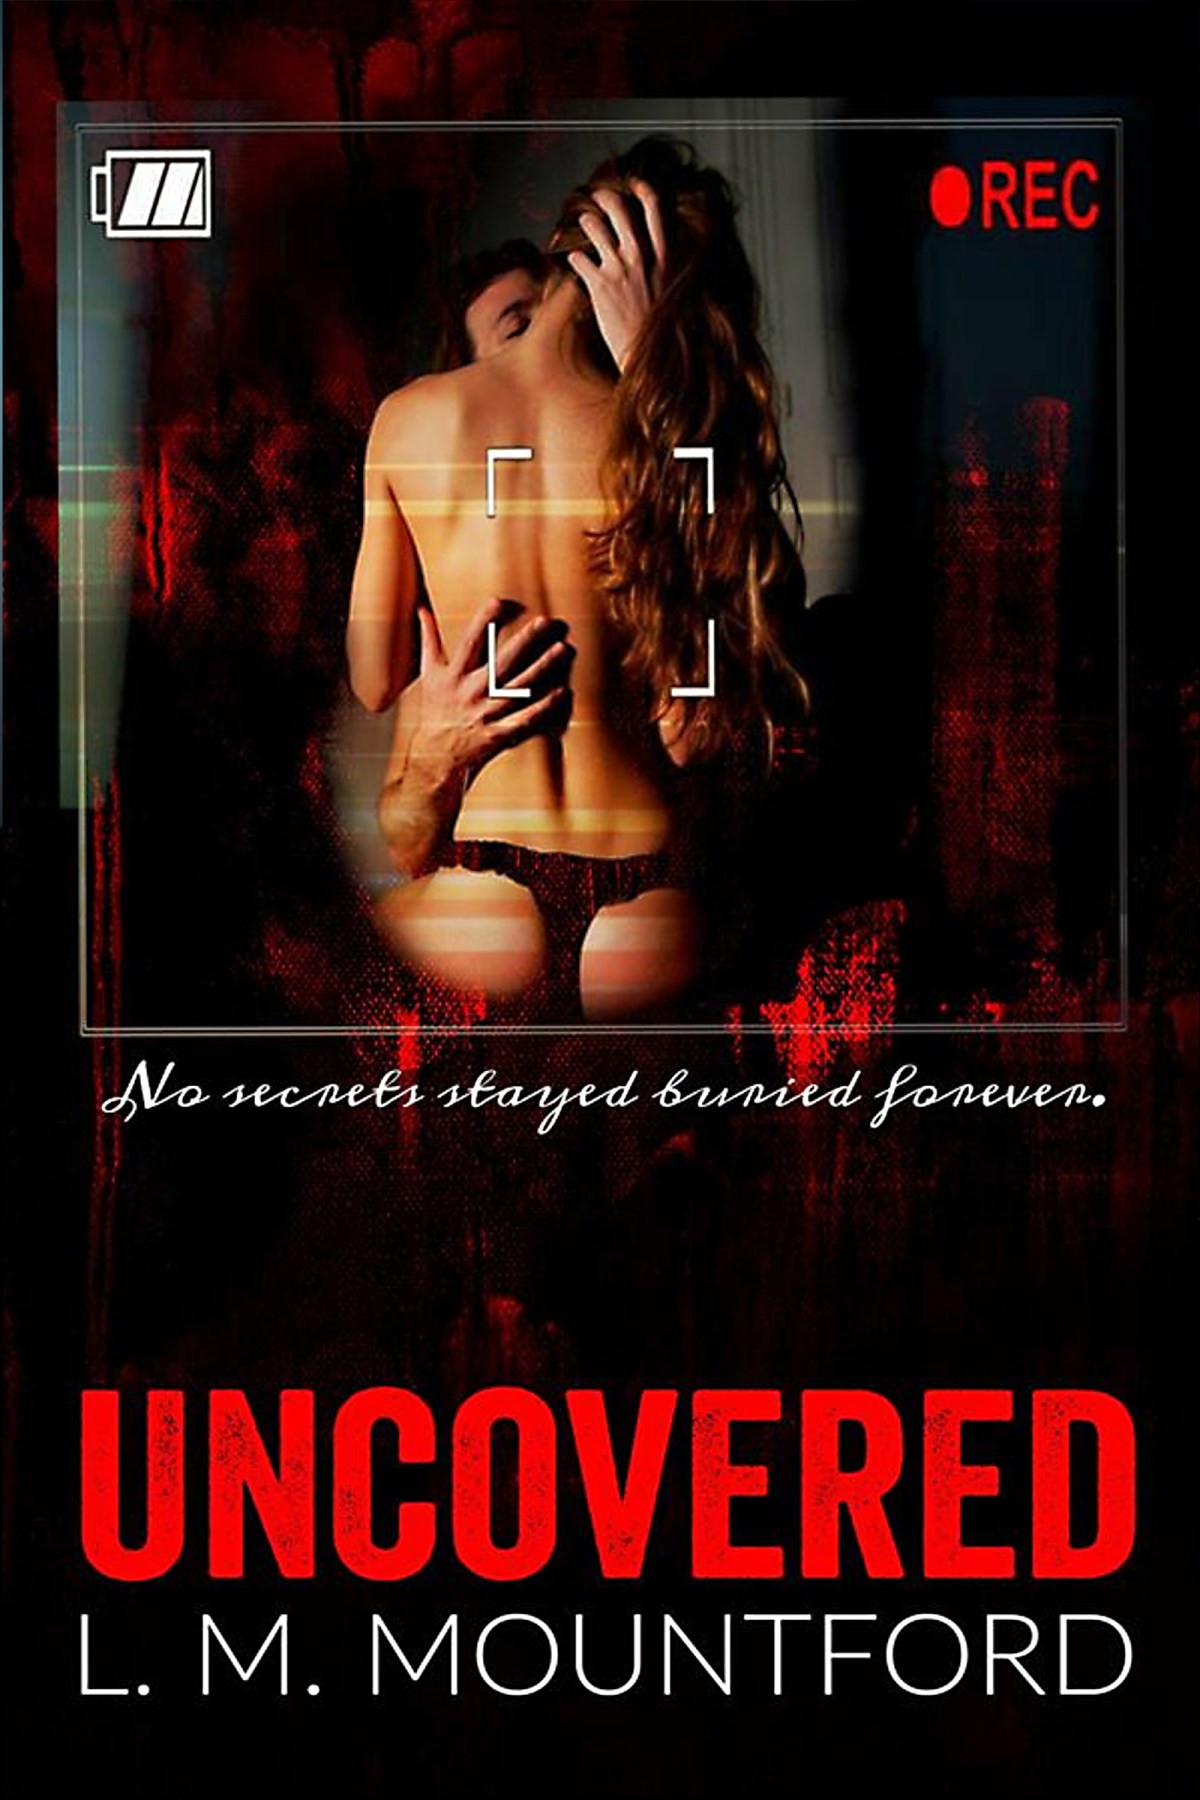 Uncovered by L. M. Mountford